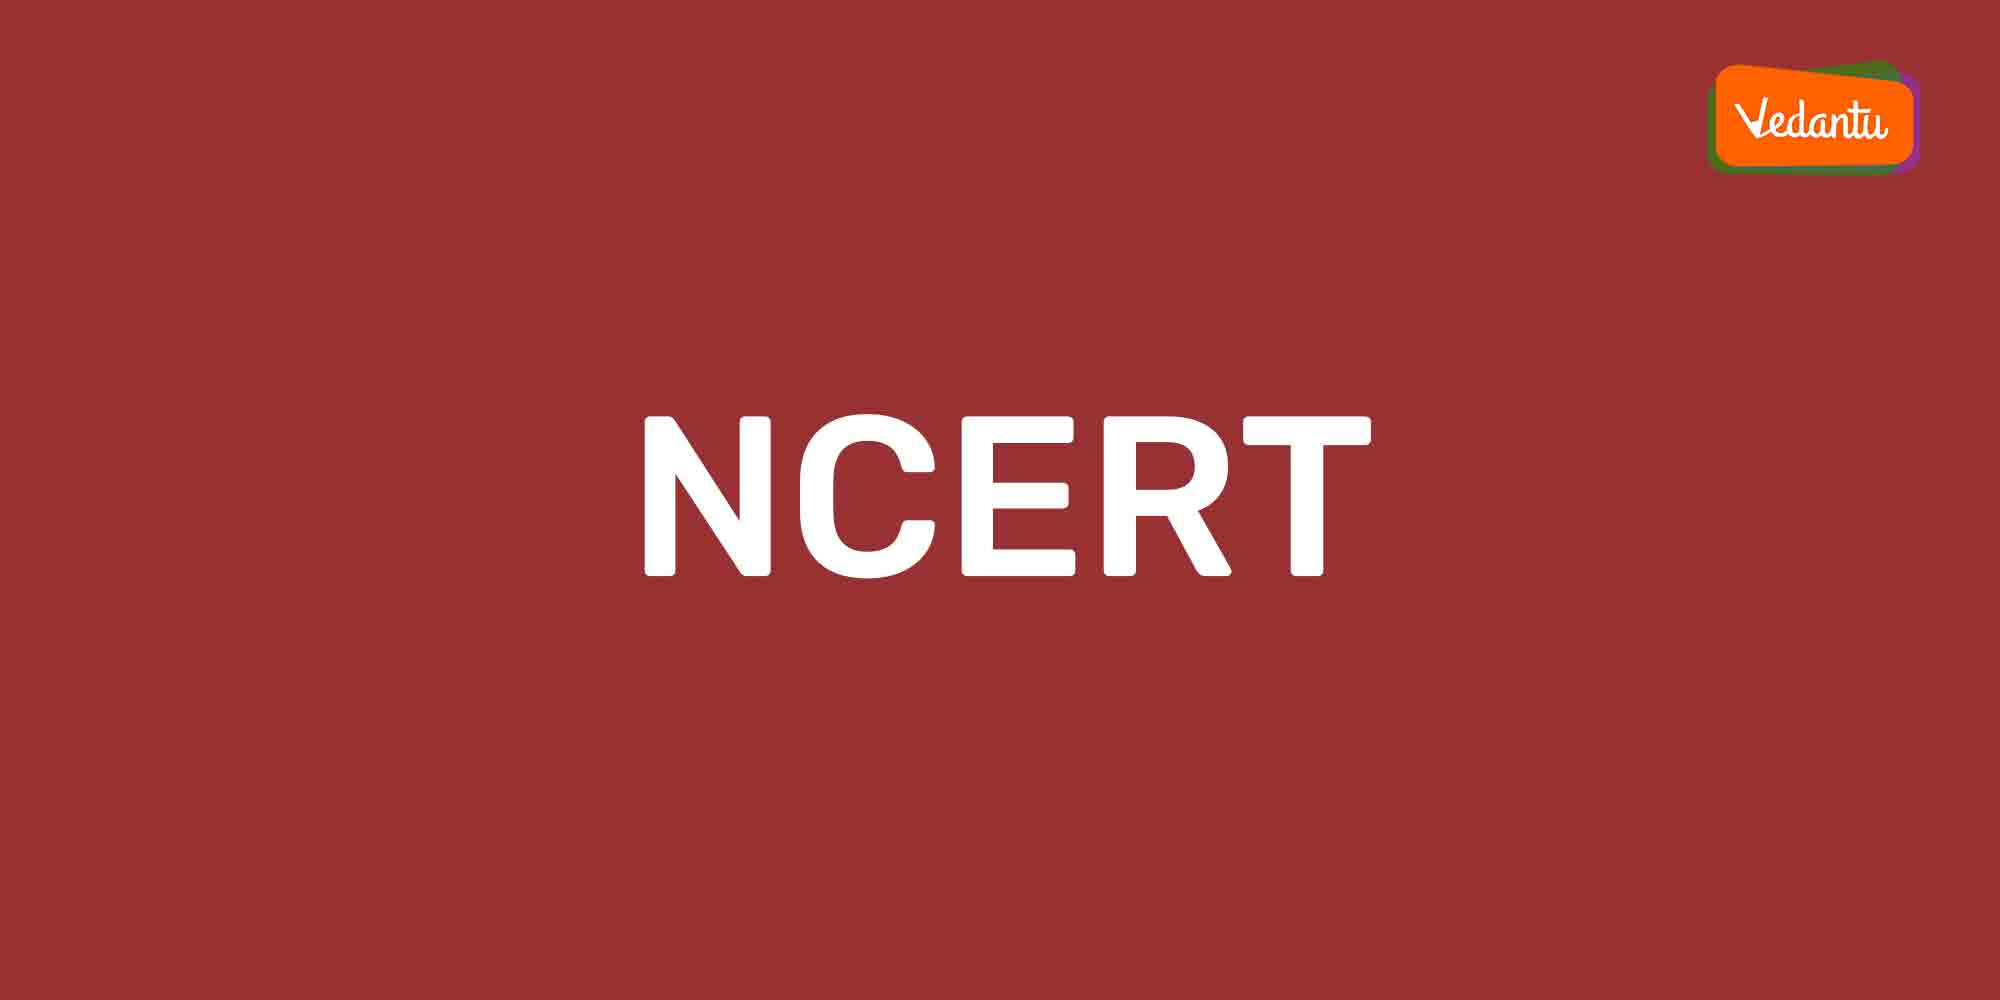 Relying on NCERT Books for NEET? Know If It Is the Right Way!